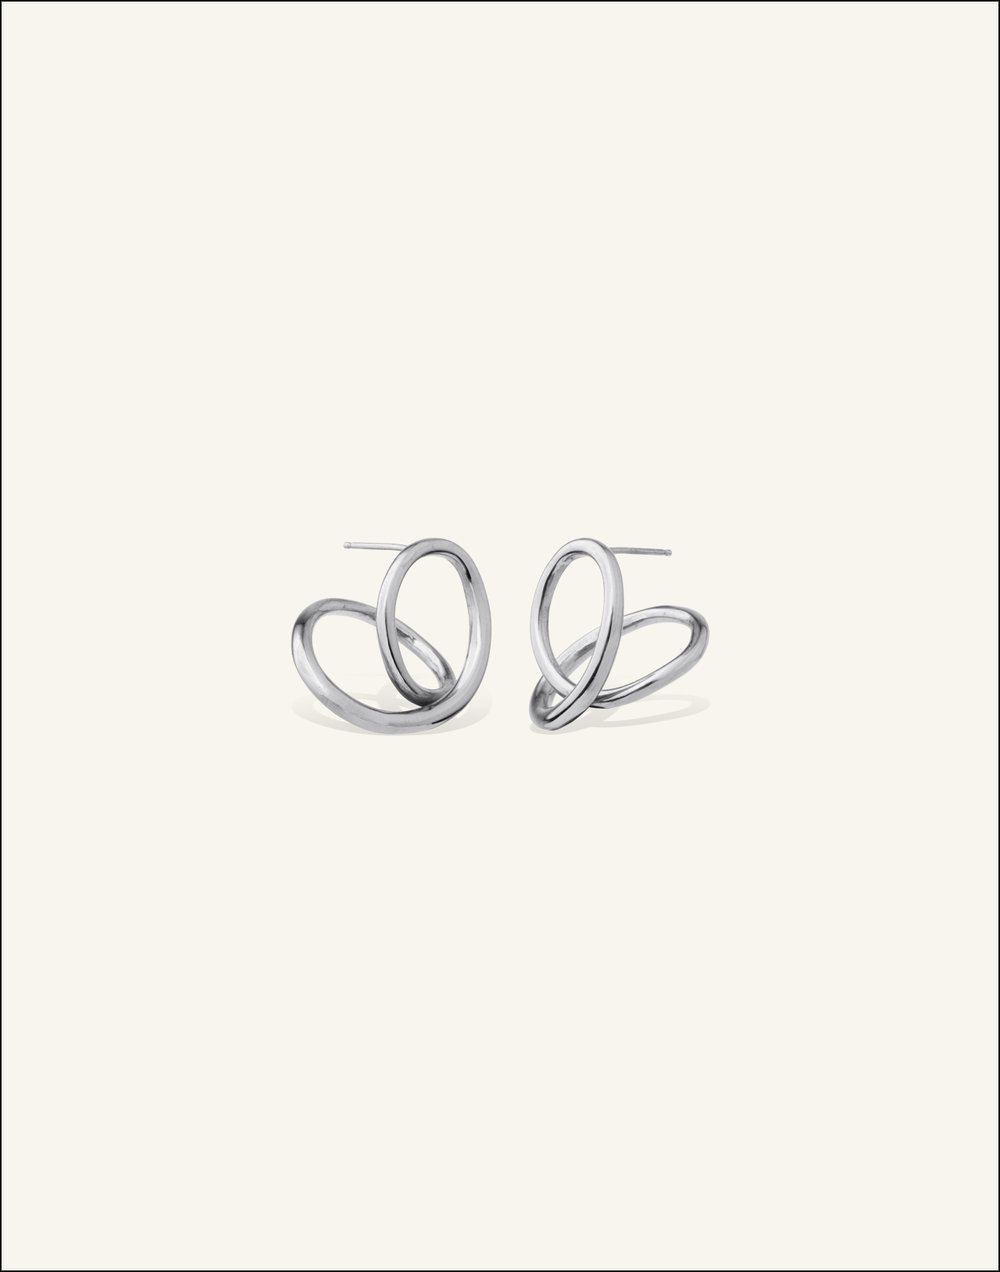 Completedworks-Silver-Earrings-The-Labyrinth-2-1.jpg